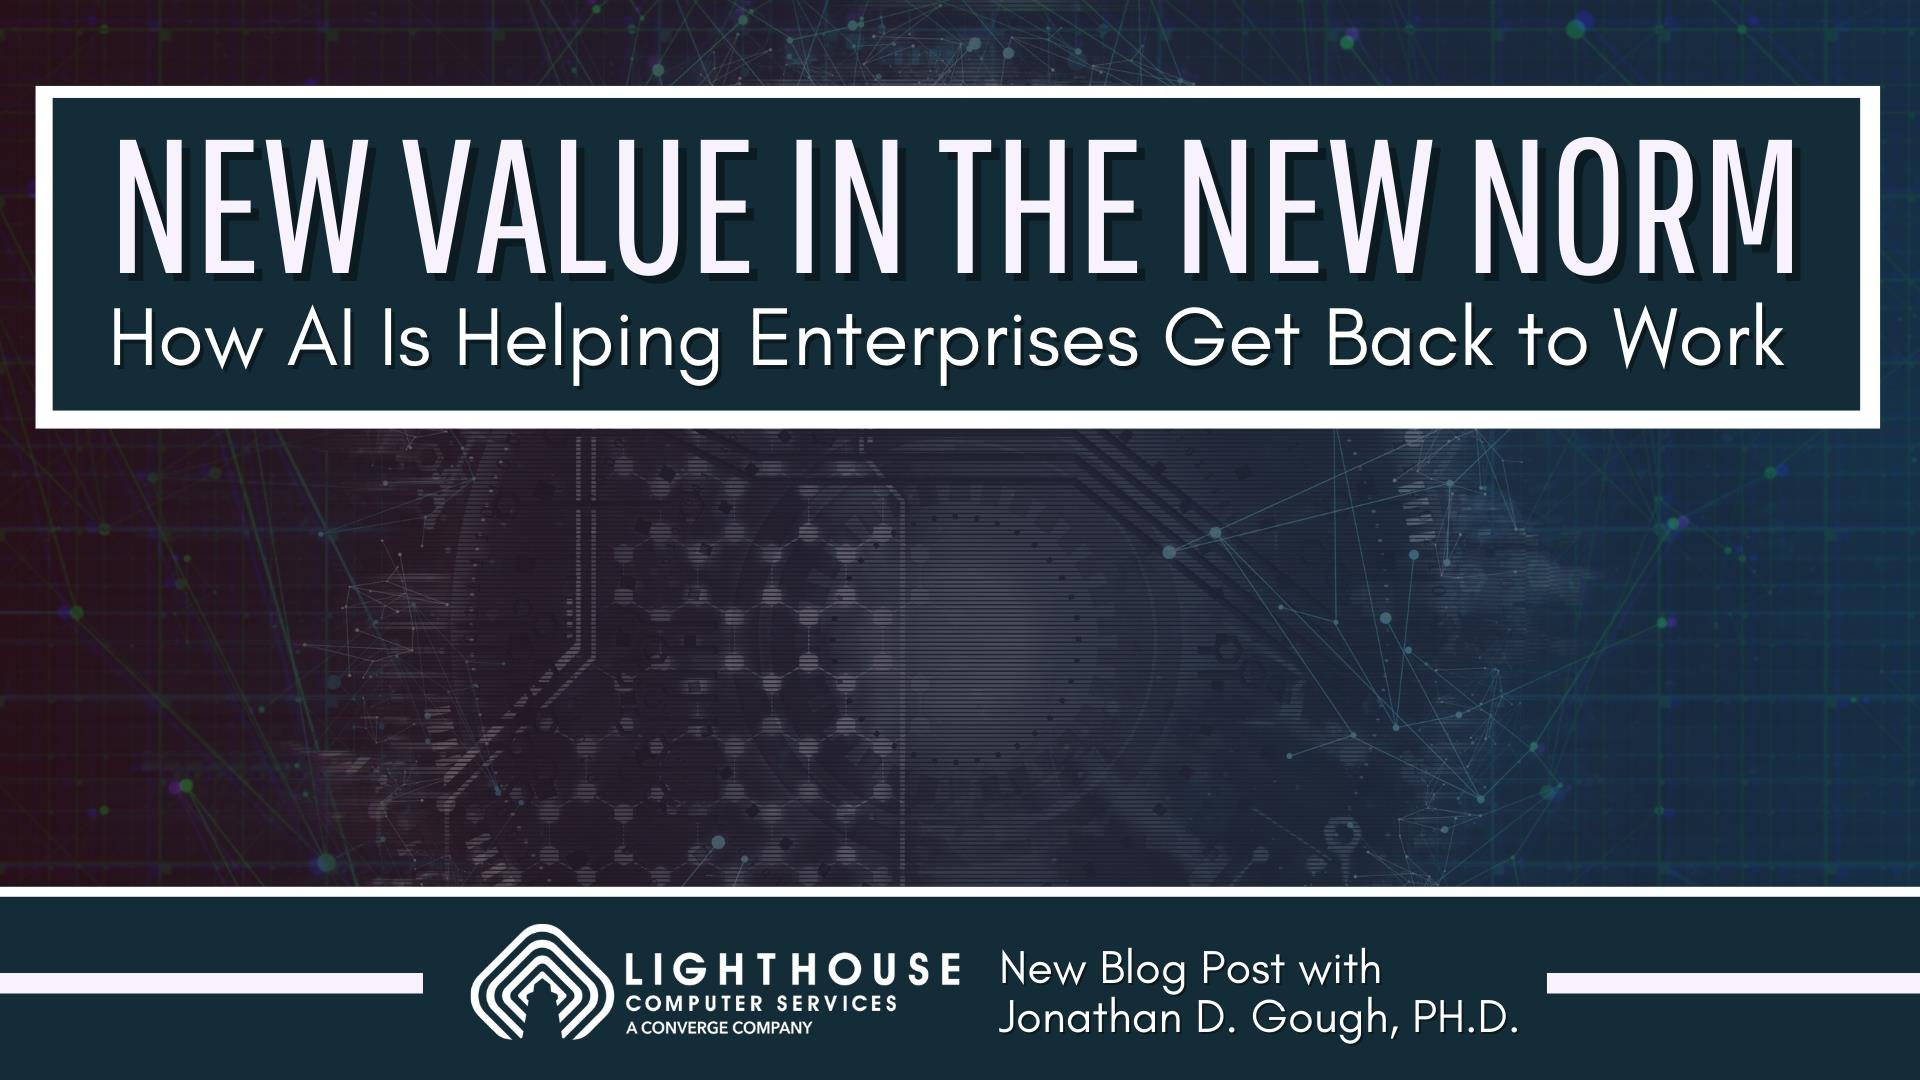 New Value in the New Norm: How AI Is Helping Enterprises Get Back to Work